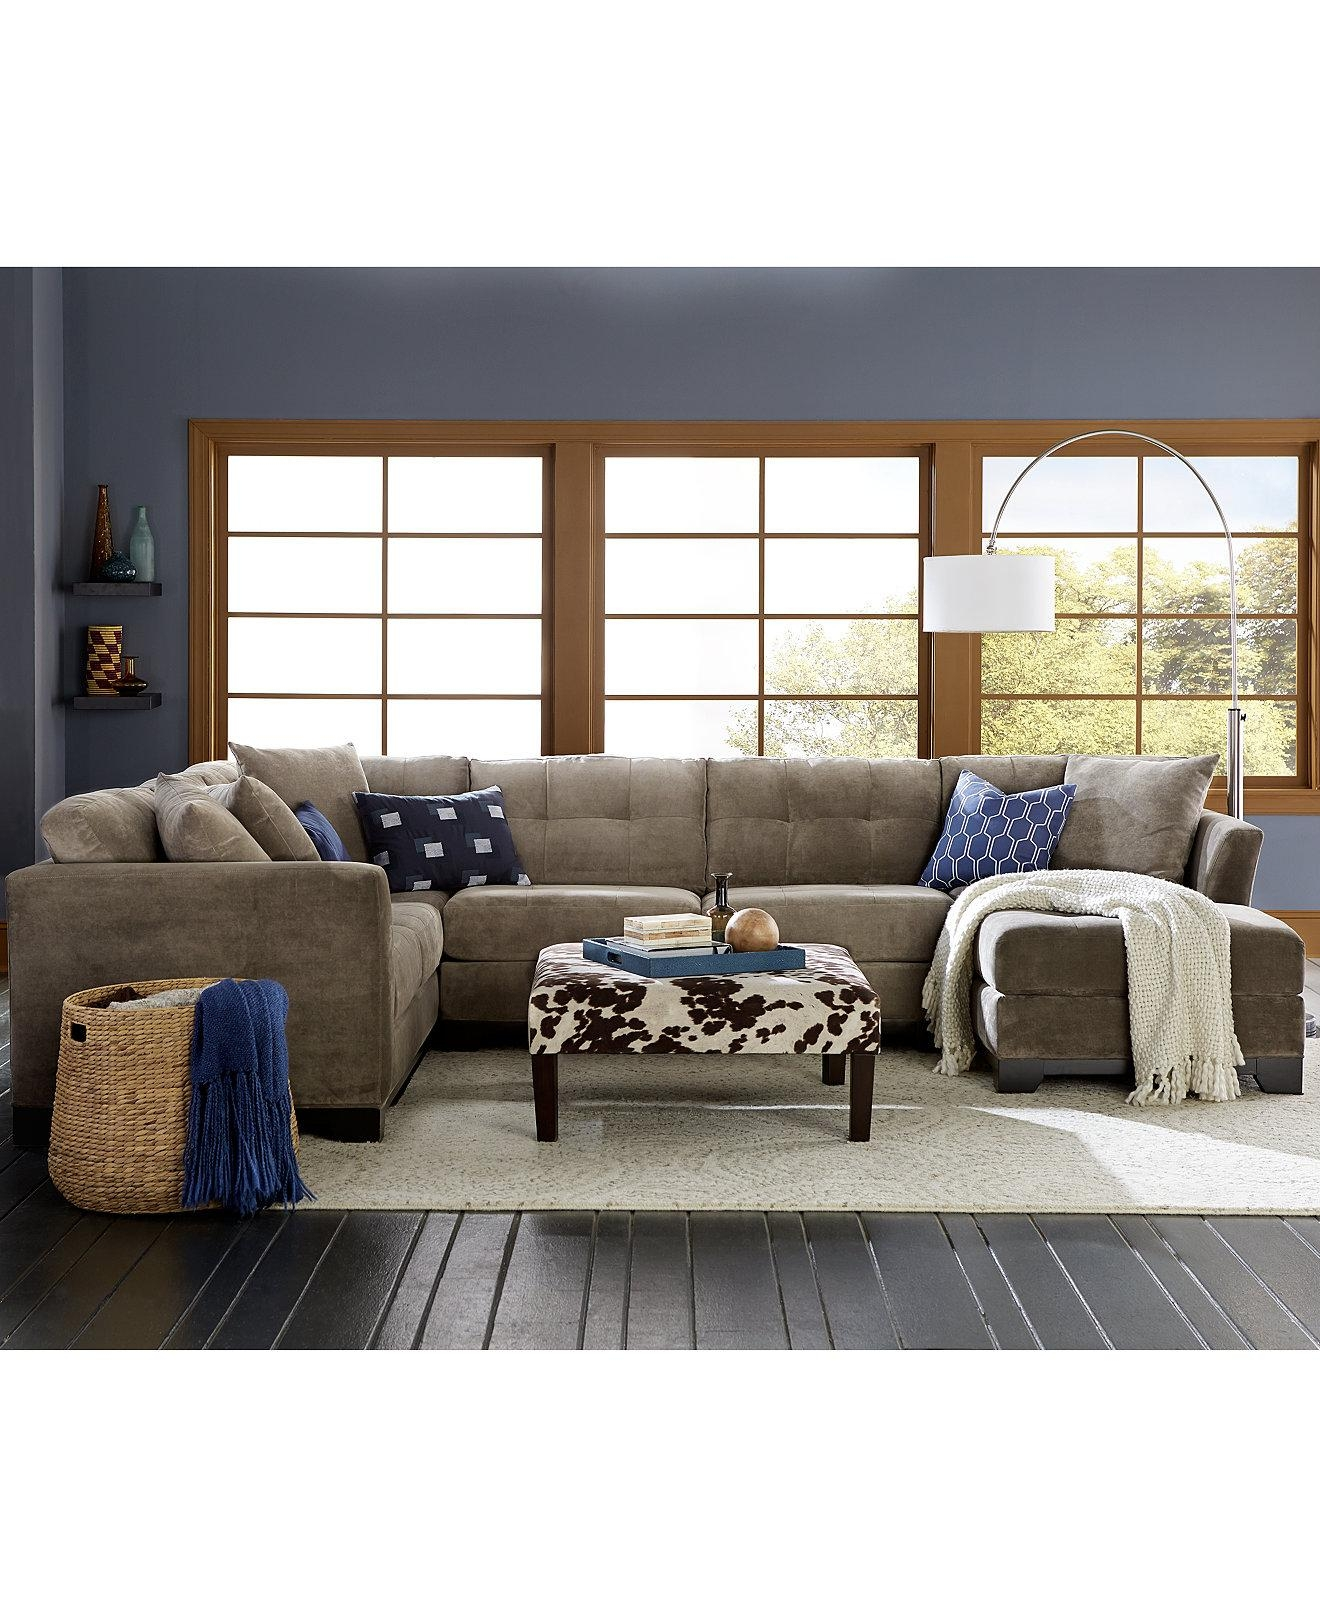 affordable mn sectional couches pictures albums of red sale co photo size on big full discount sofas page trilife